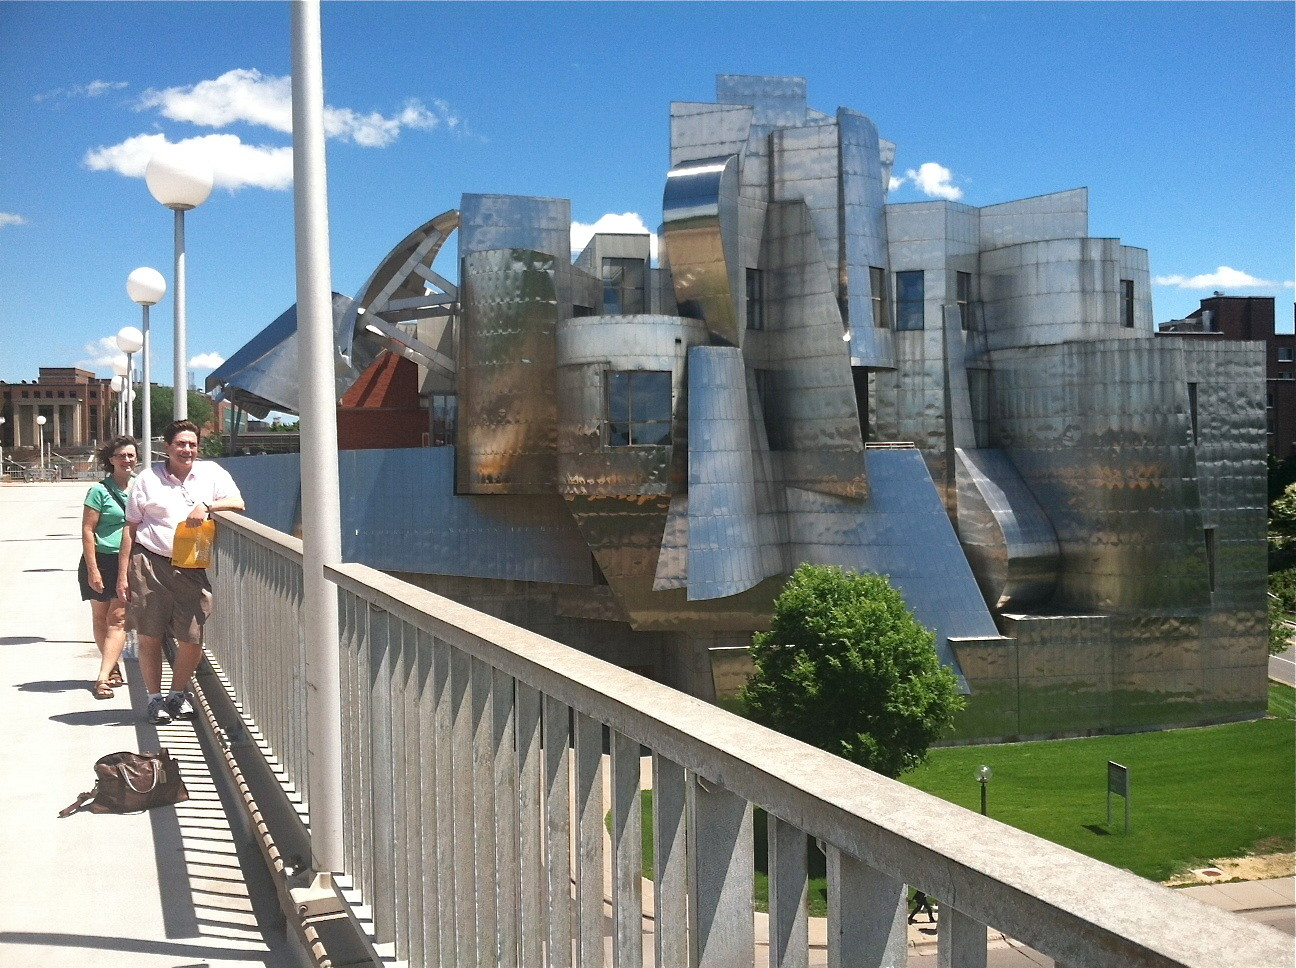 John & Ann, Weisman Museum on the univ. campus, Frank Gehry designed structure.